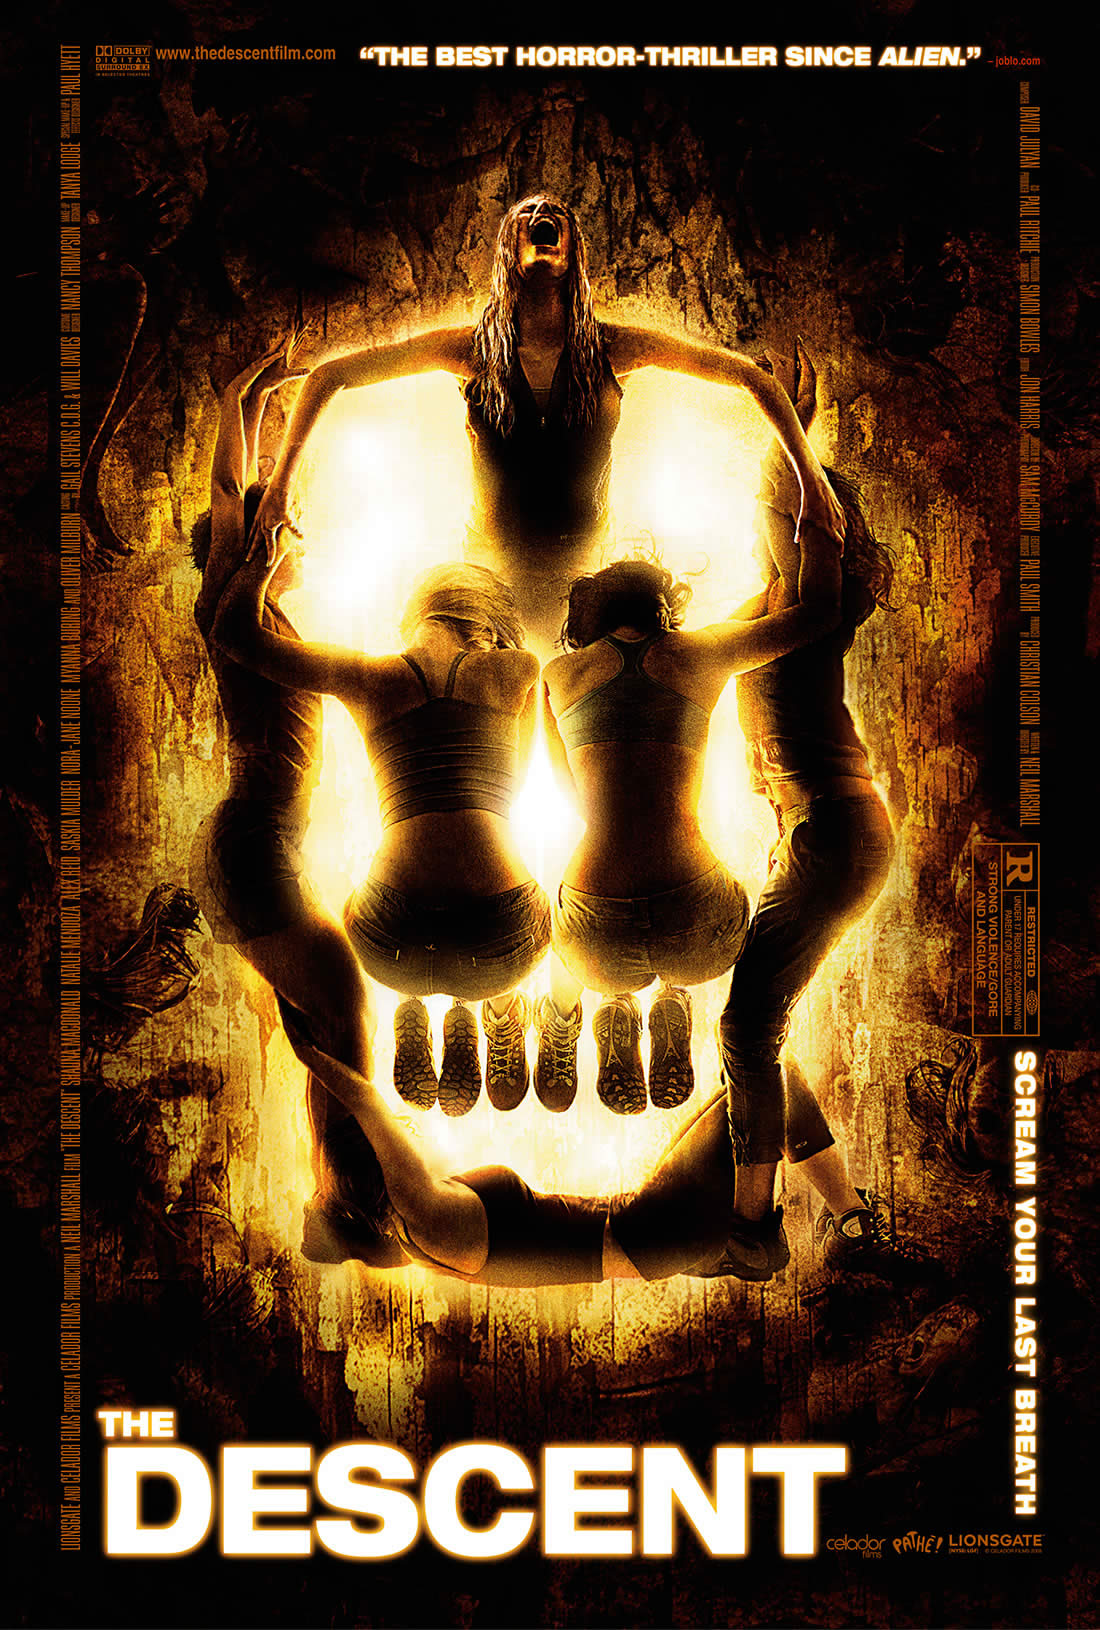 The Descent (2005) movie poster, skull, dali